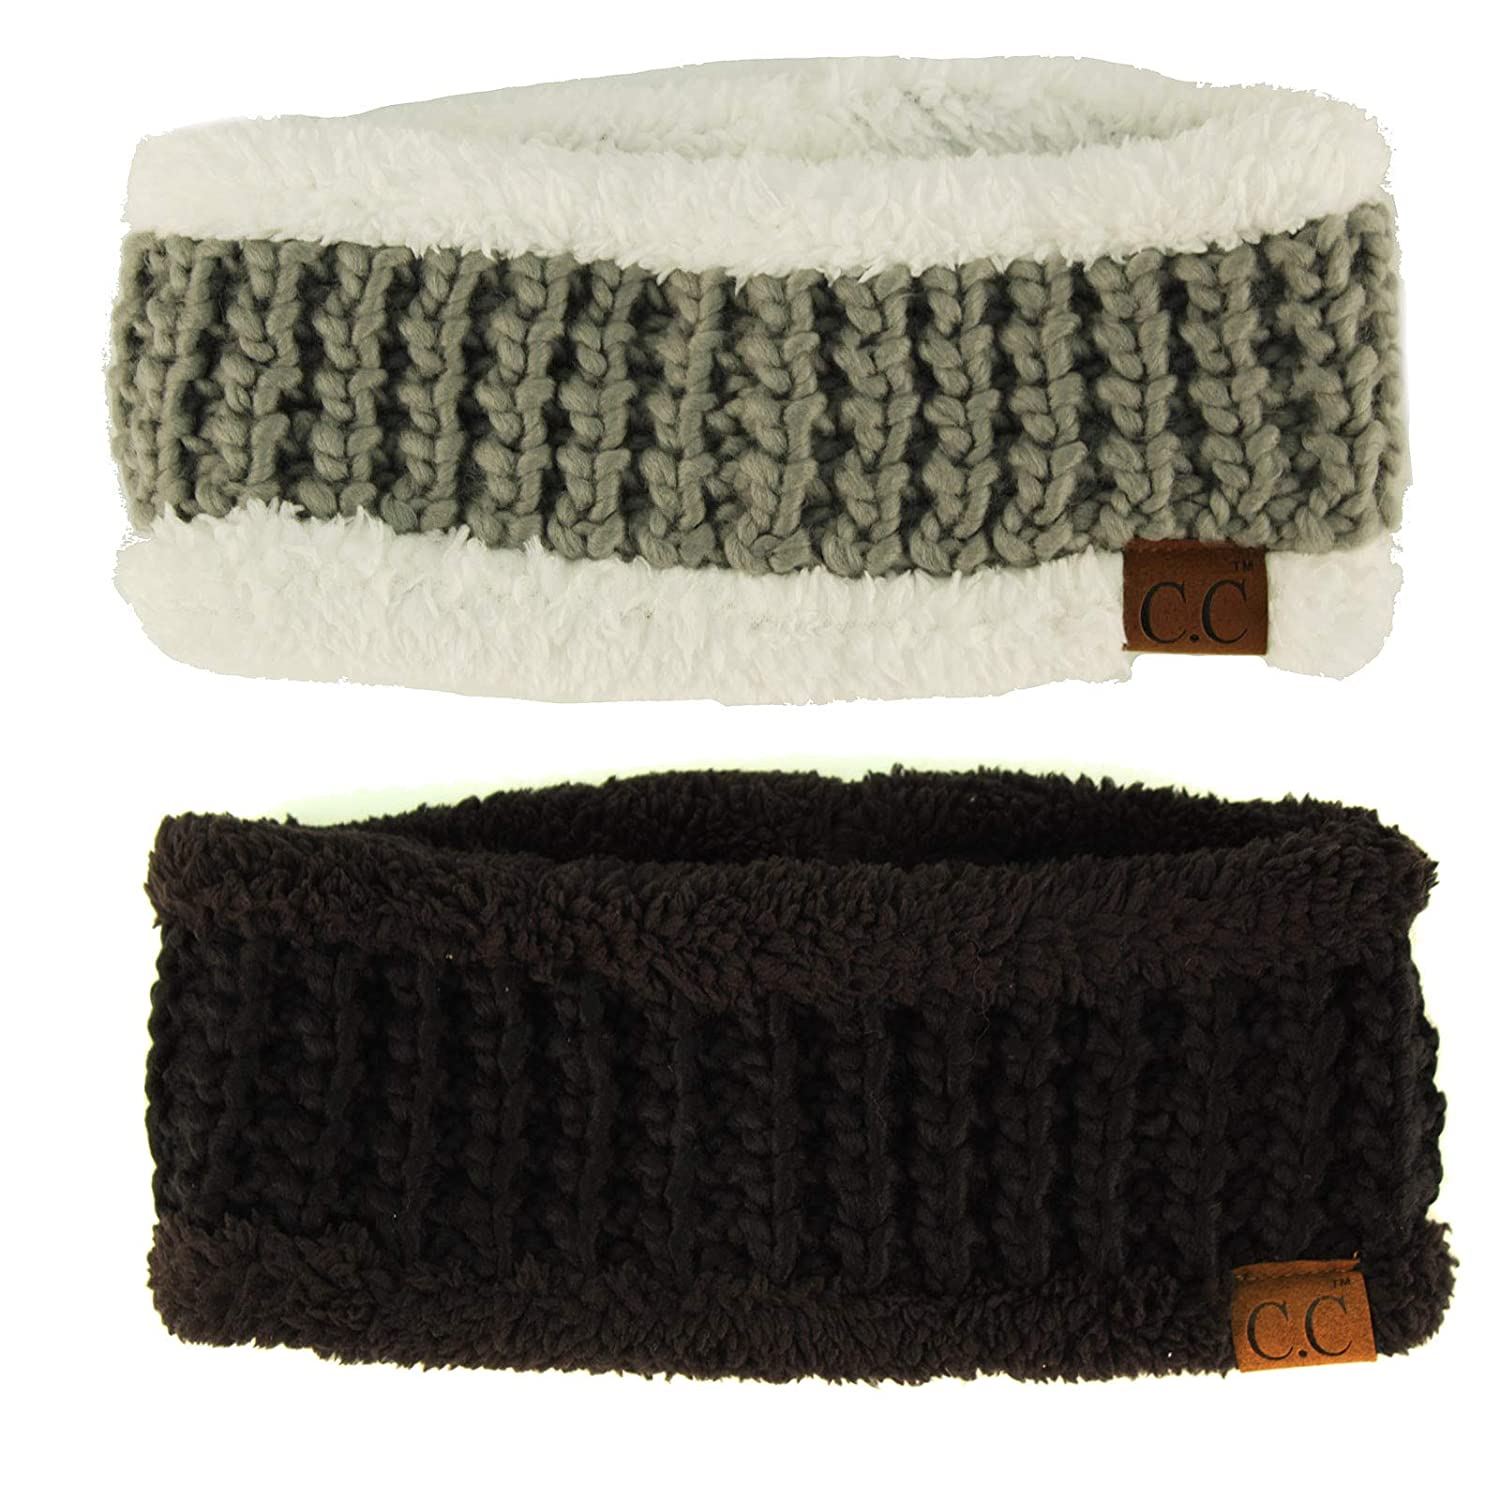 42c6f62a7b4 CCBeanie Sherpa Polar Fleece Lined Thick Knit Headband Headwrap Hat Cap  Black Natural Gray 2 Pack Combo at Amazon Women s Clothing store